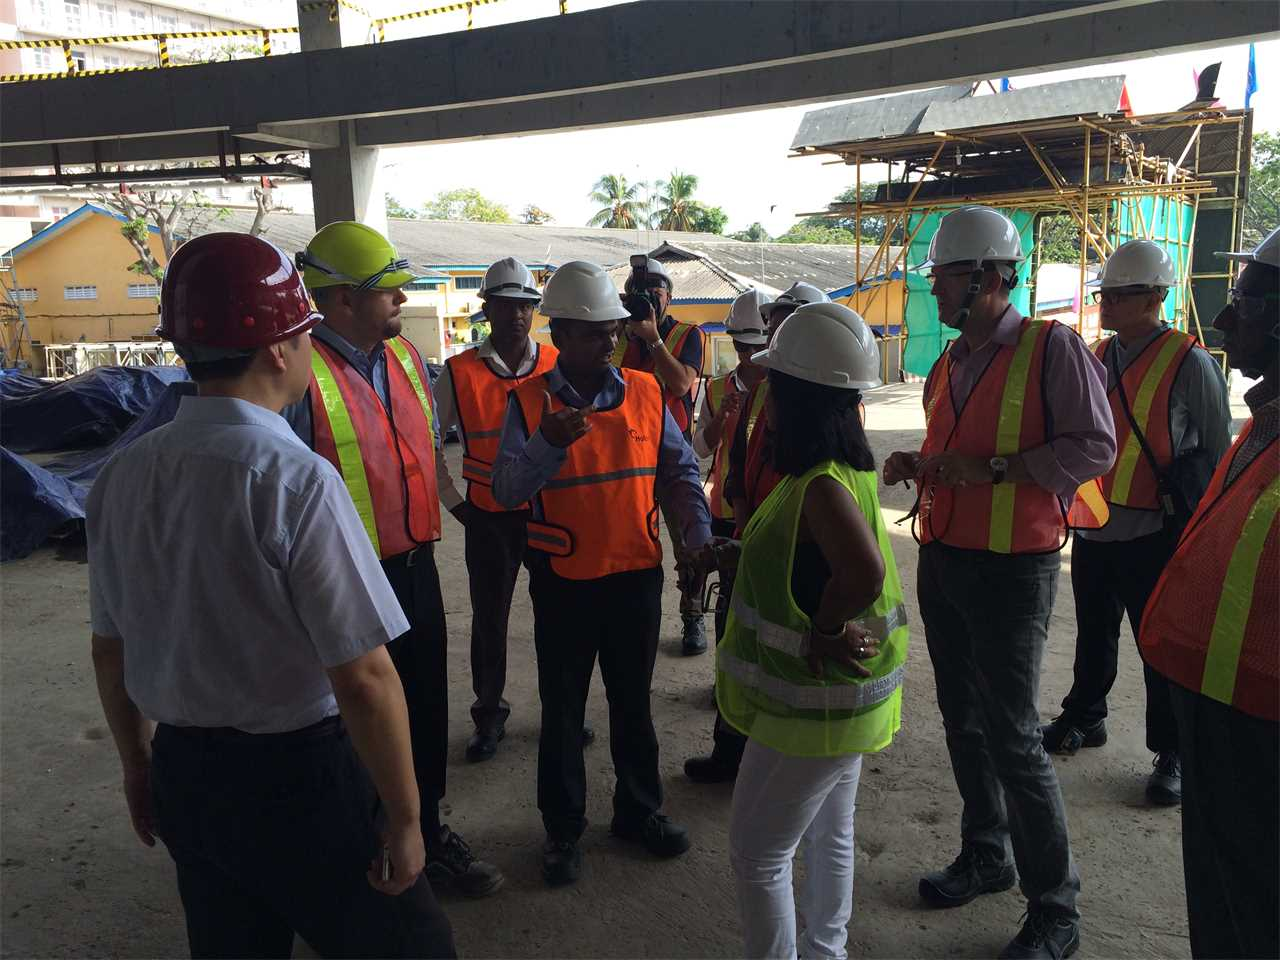 Global Silver Awards 2015 prize event – Site visits: MAS Intimates Thurulie & Lotus Tower Colombo